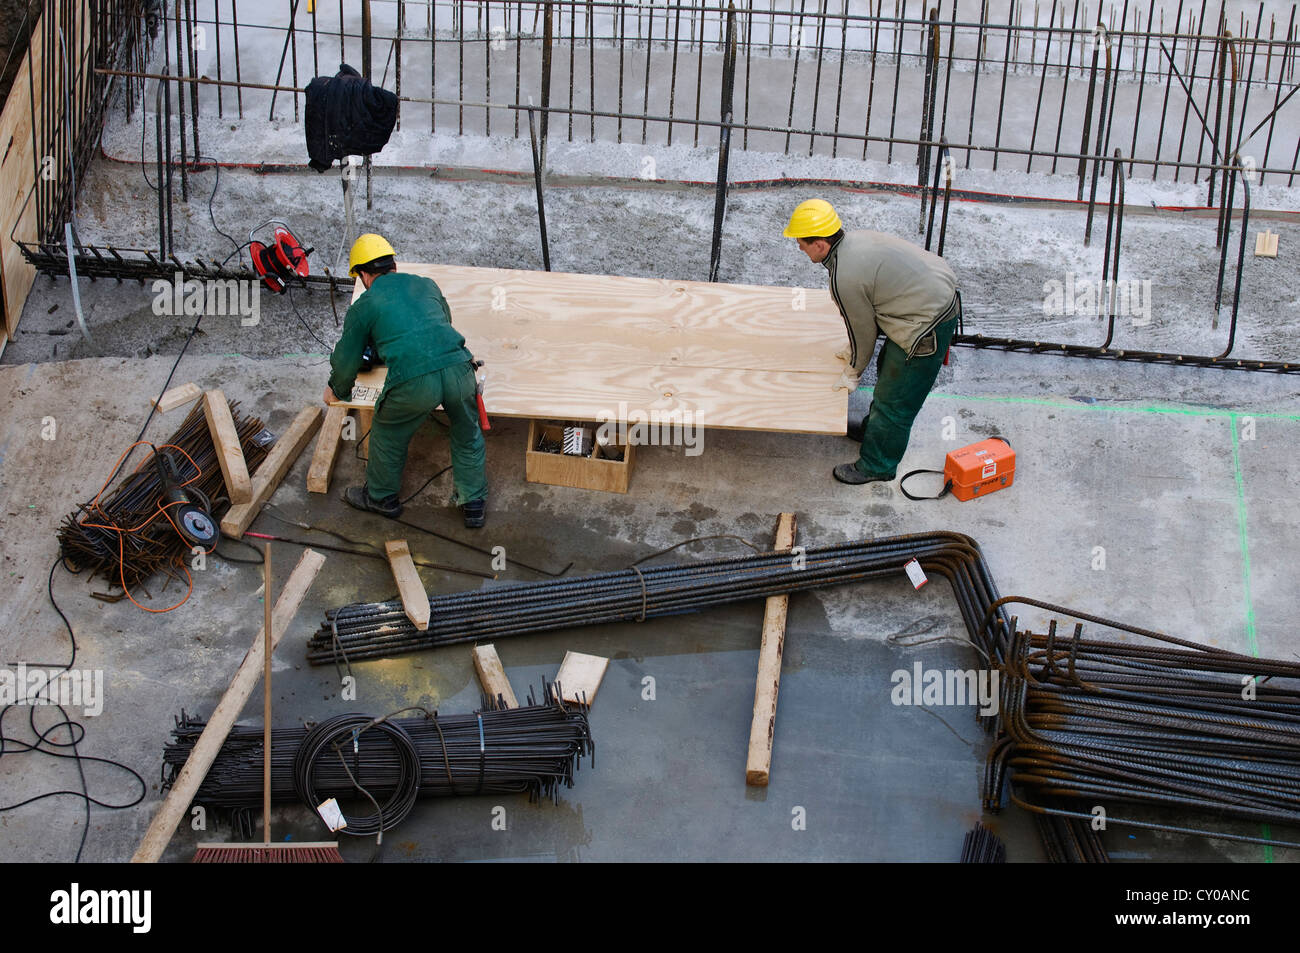 Construction site, workers cutting plywood, North Rhine-Westphalia, PublicGround - Stock Image